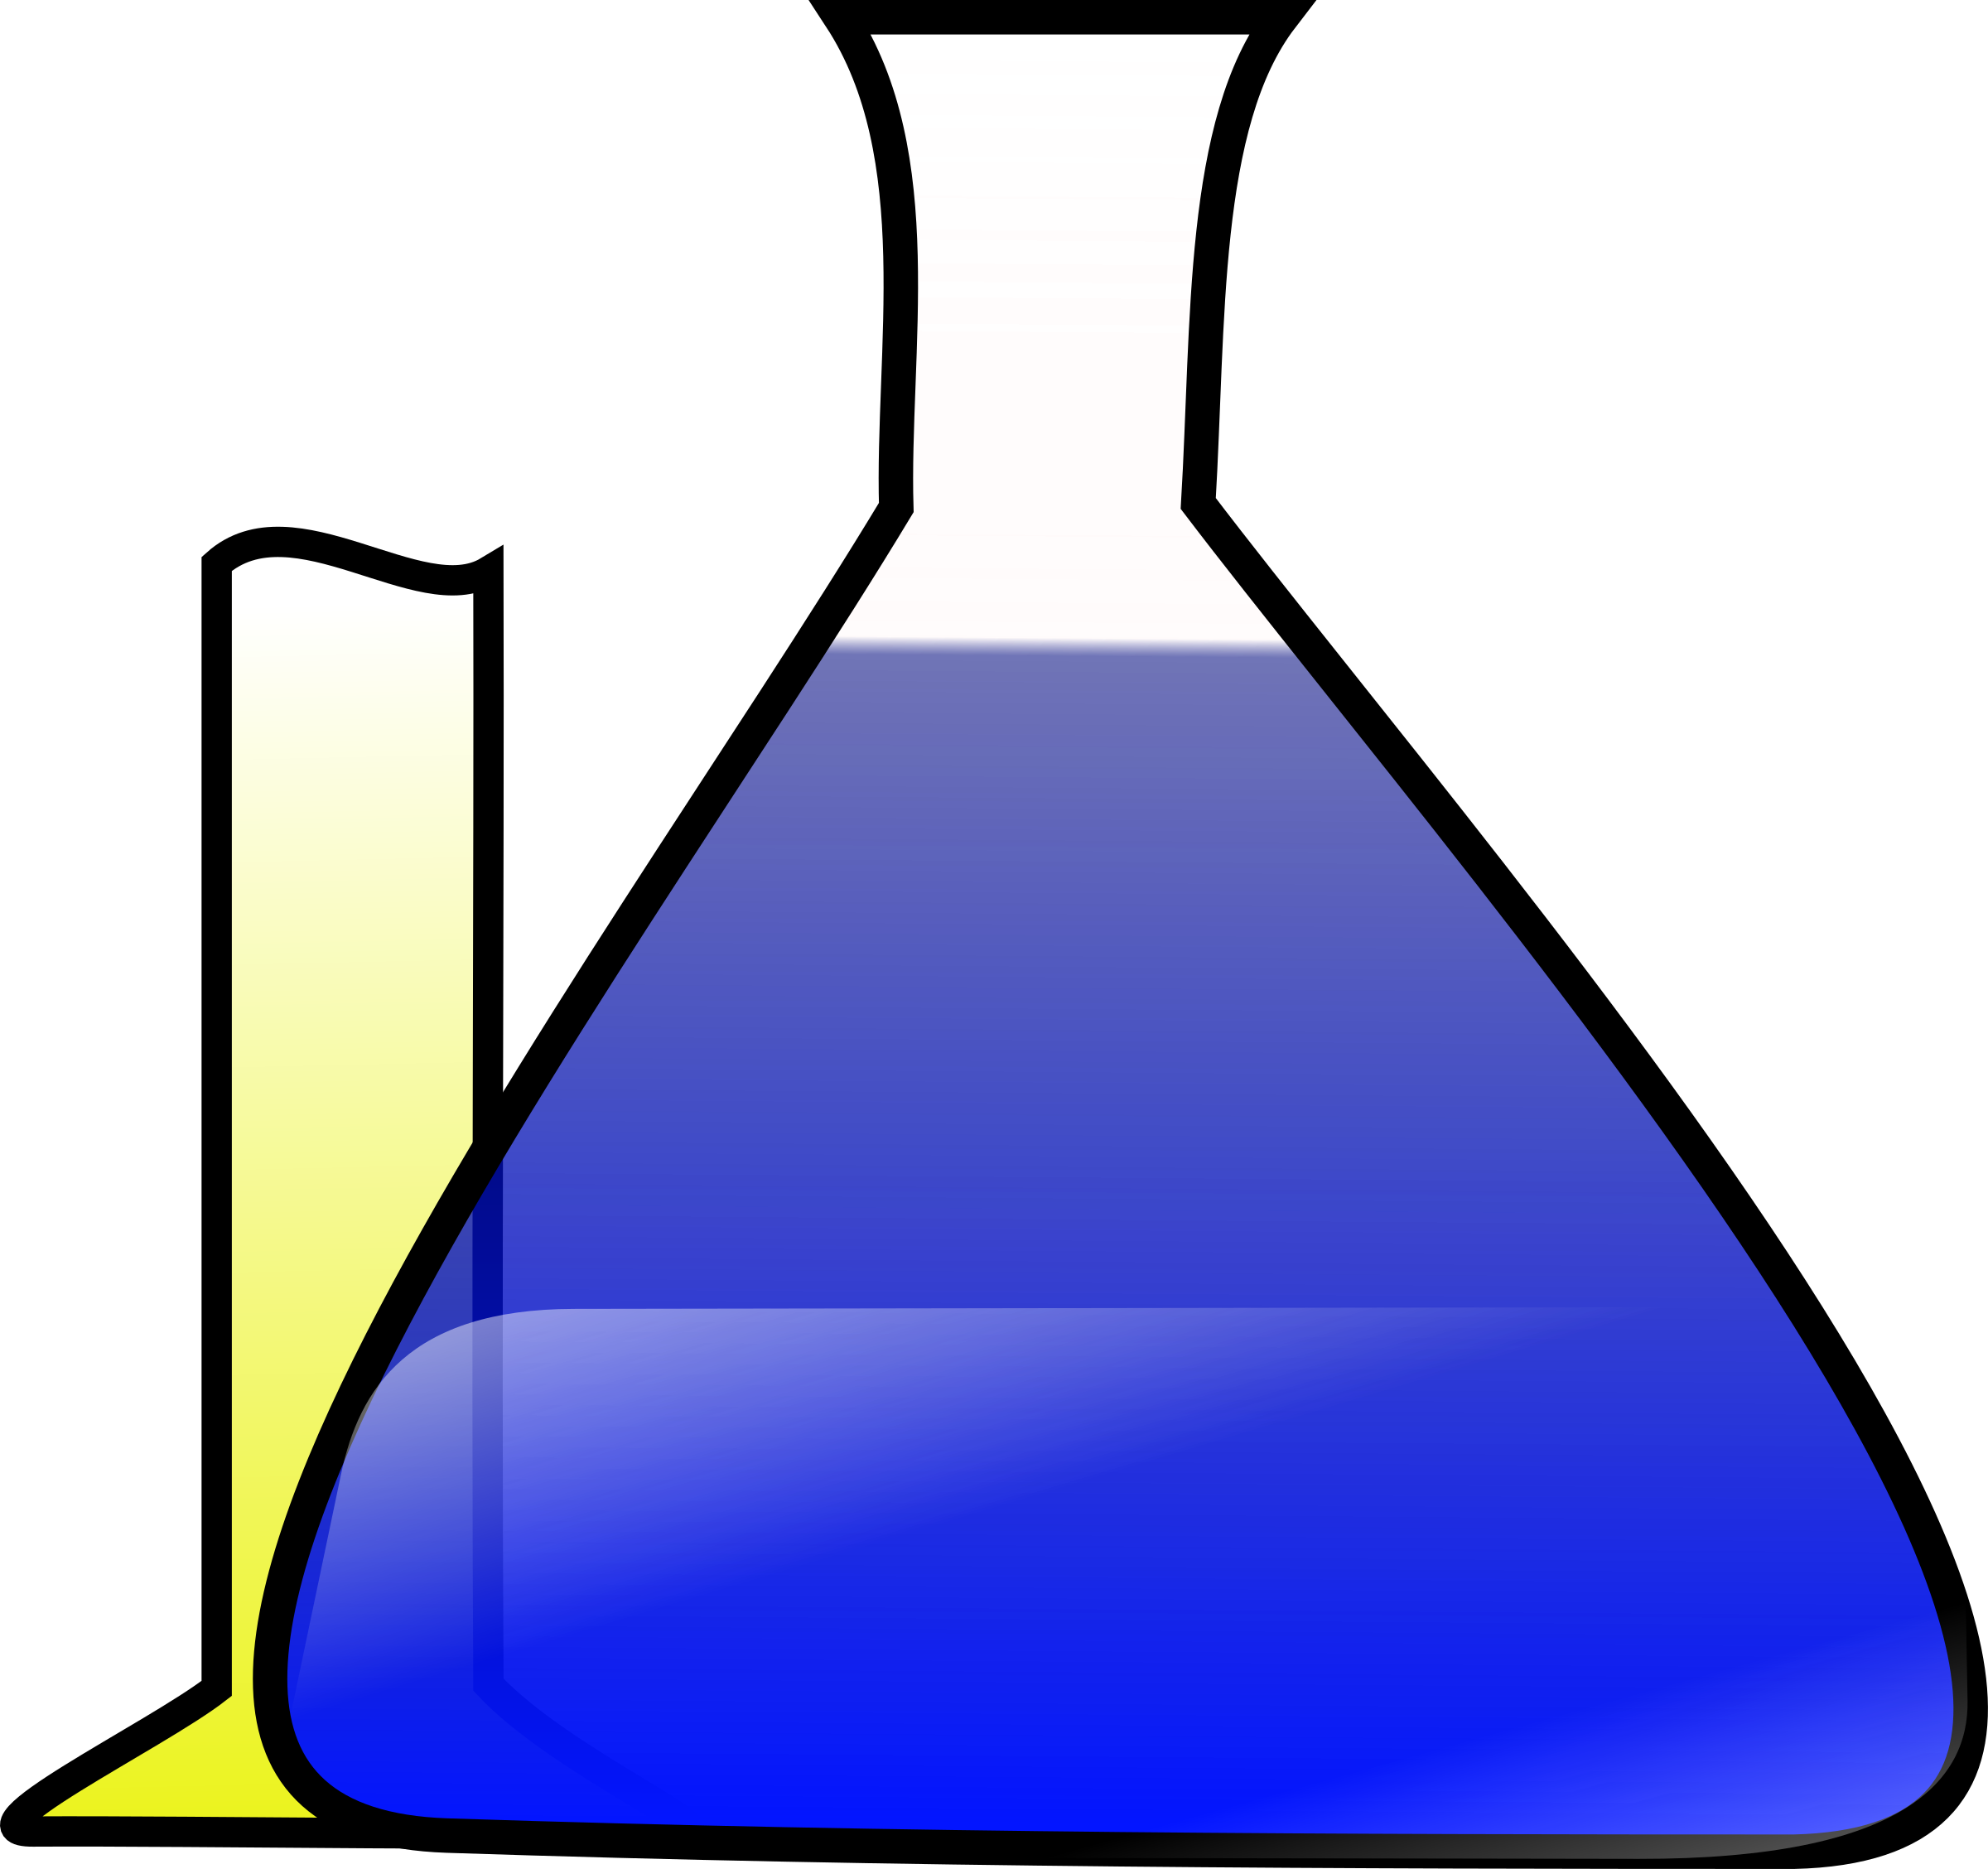 svg royalty free download Experiment clipart. Chemical science big image.